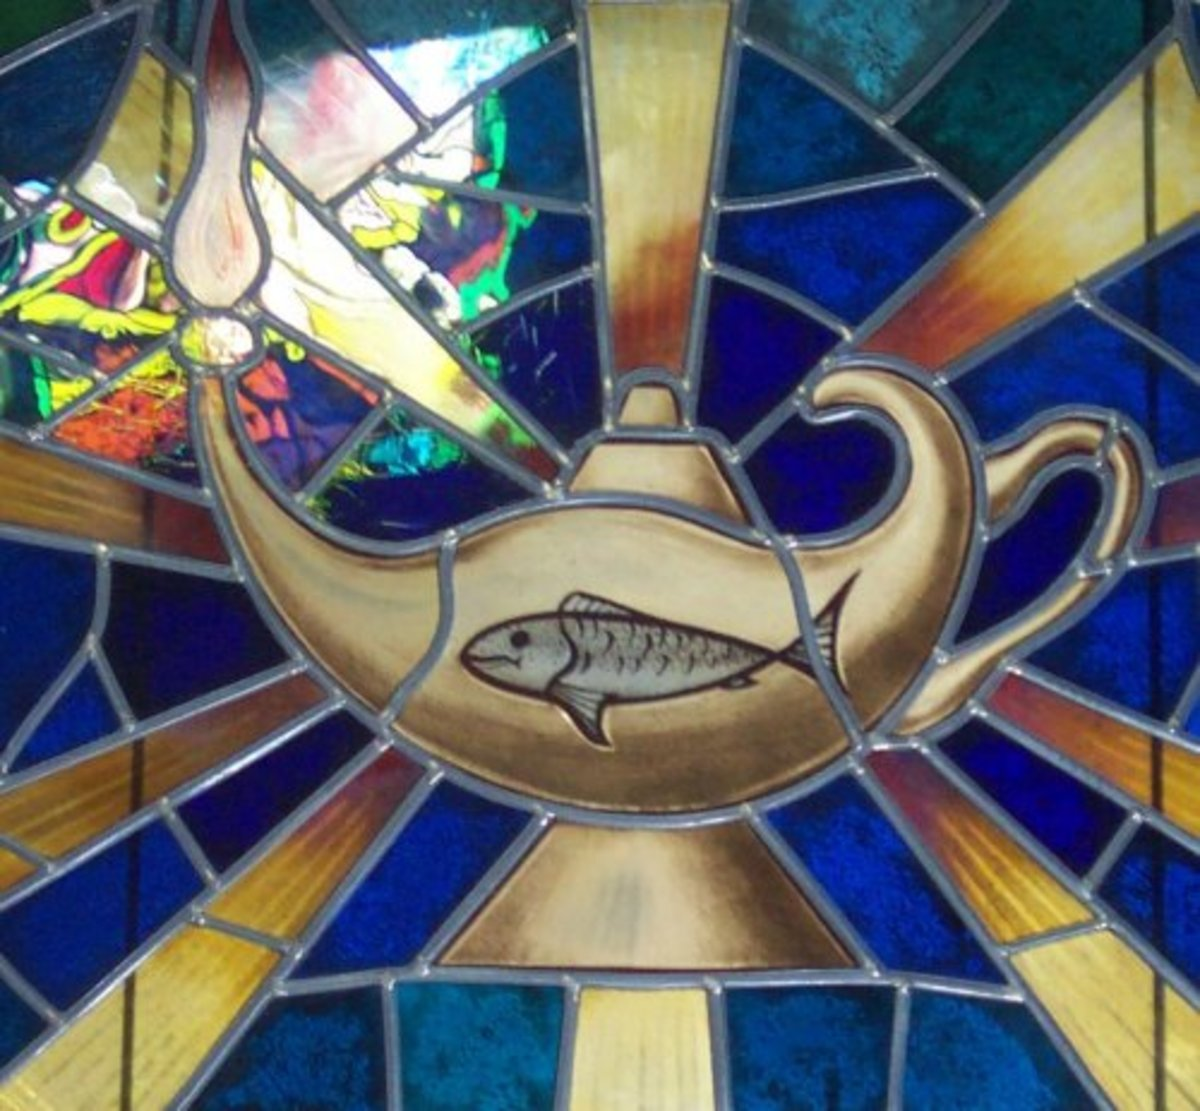 Fish, lamp and sun symbol in a church in Vilaflor